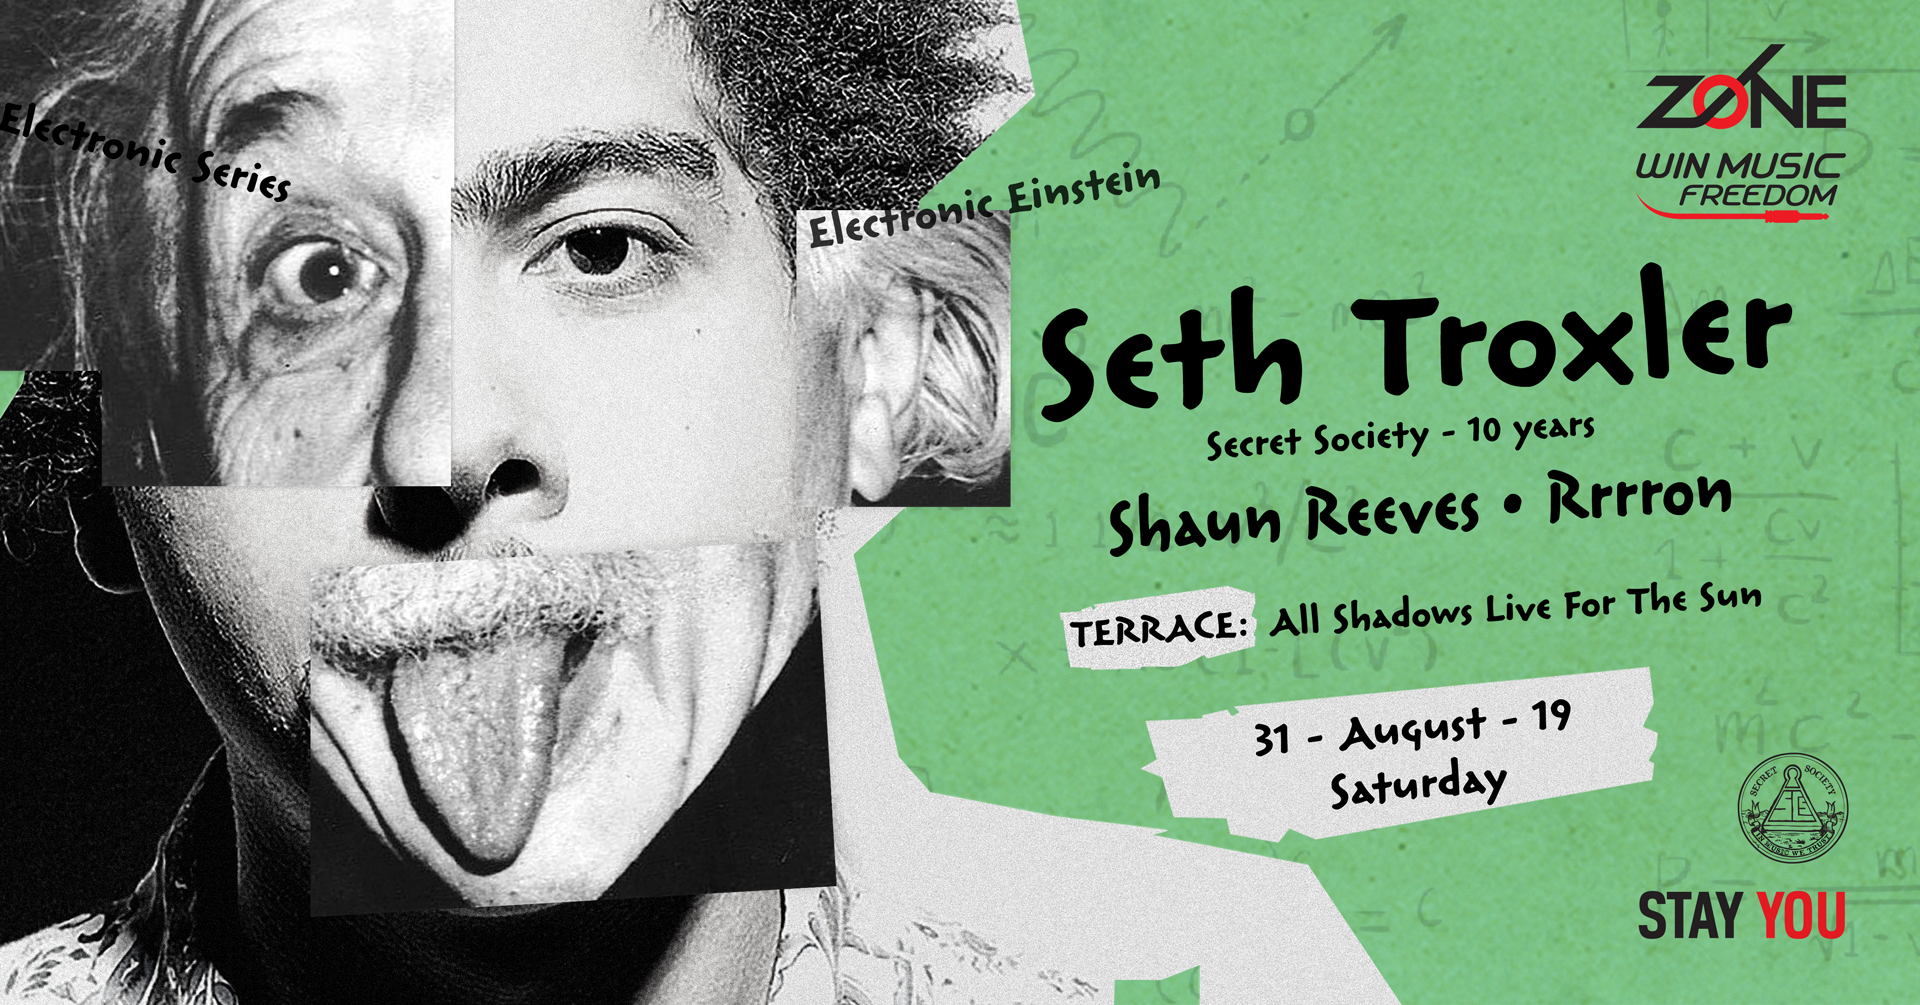 Zone Electronic Kick-off w/ Seth Troxler & Shaun Reeves